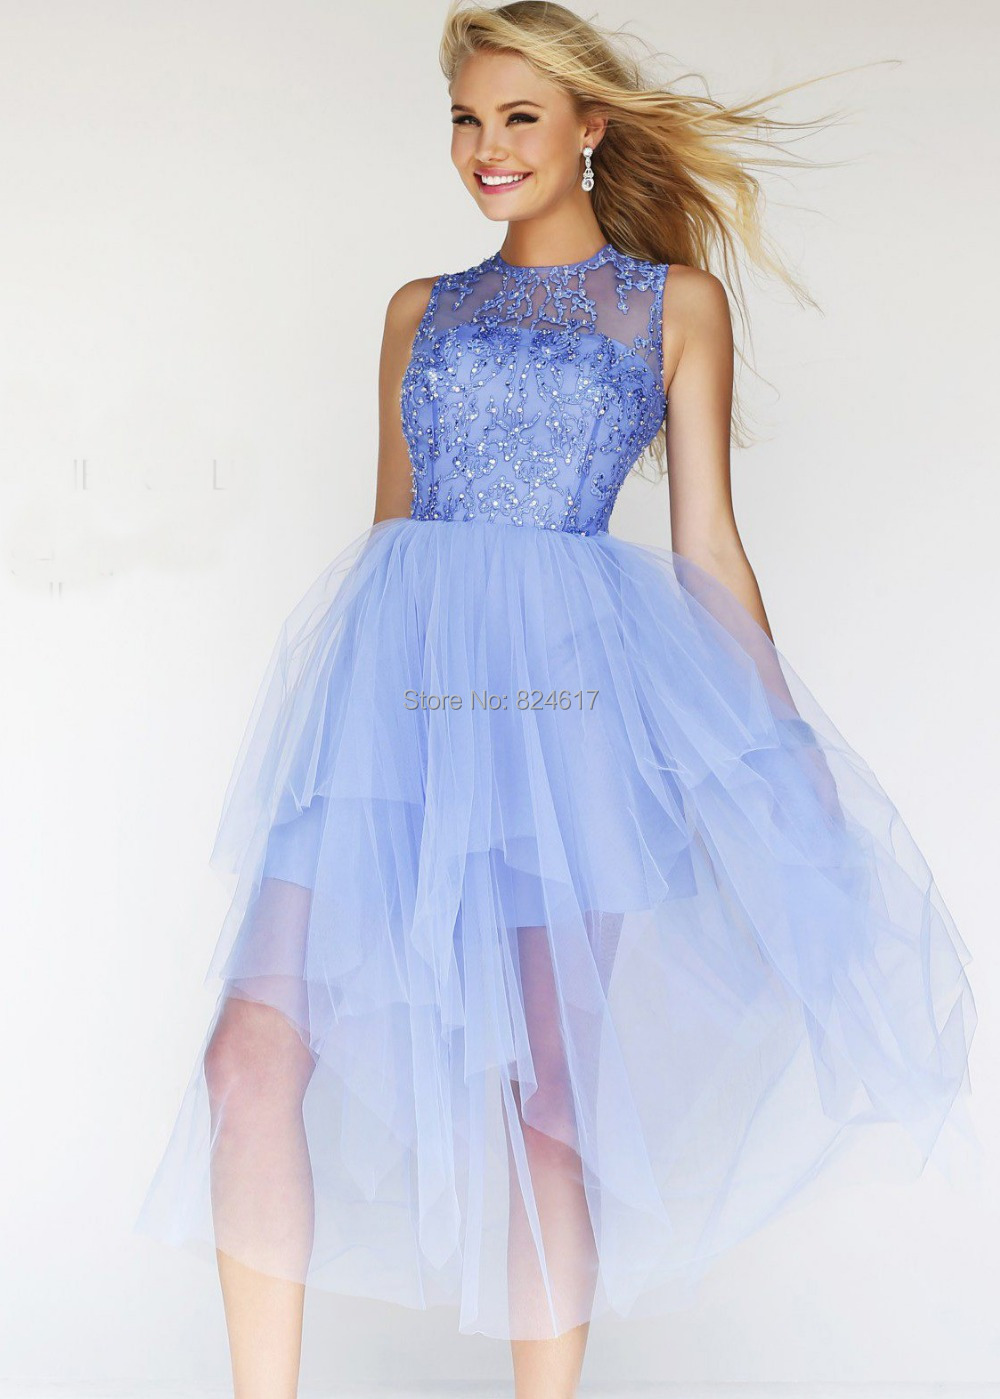 Classy Homecoming Dresses - Cocktail Dresses 2016